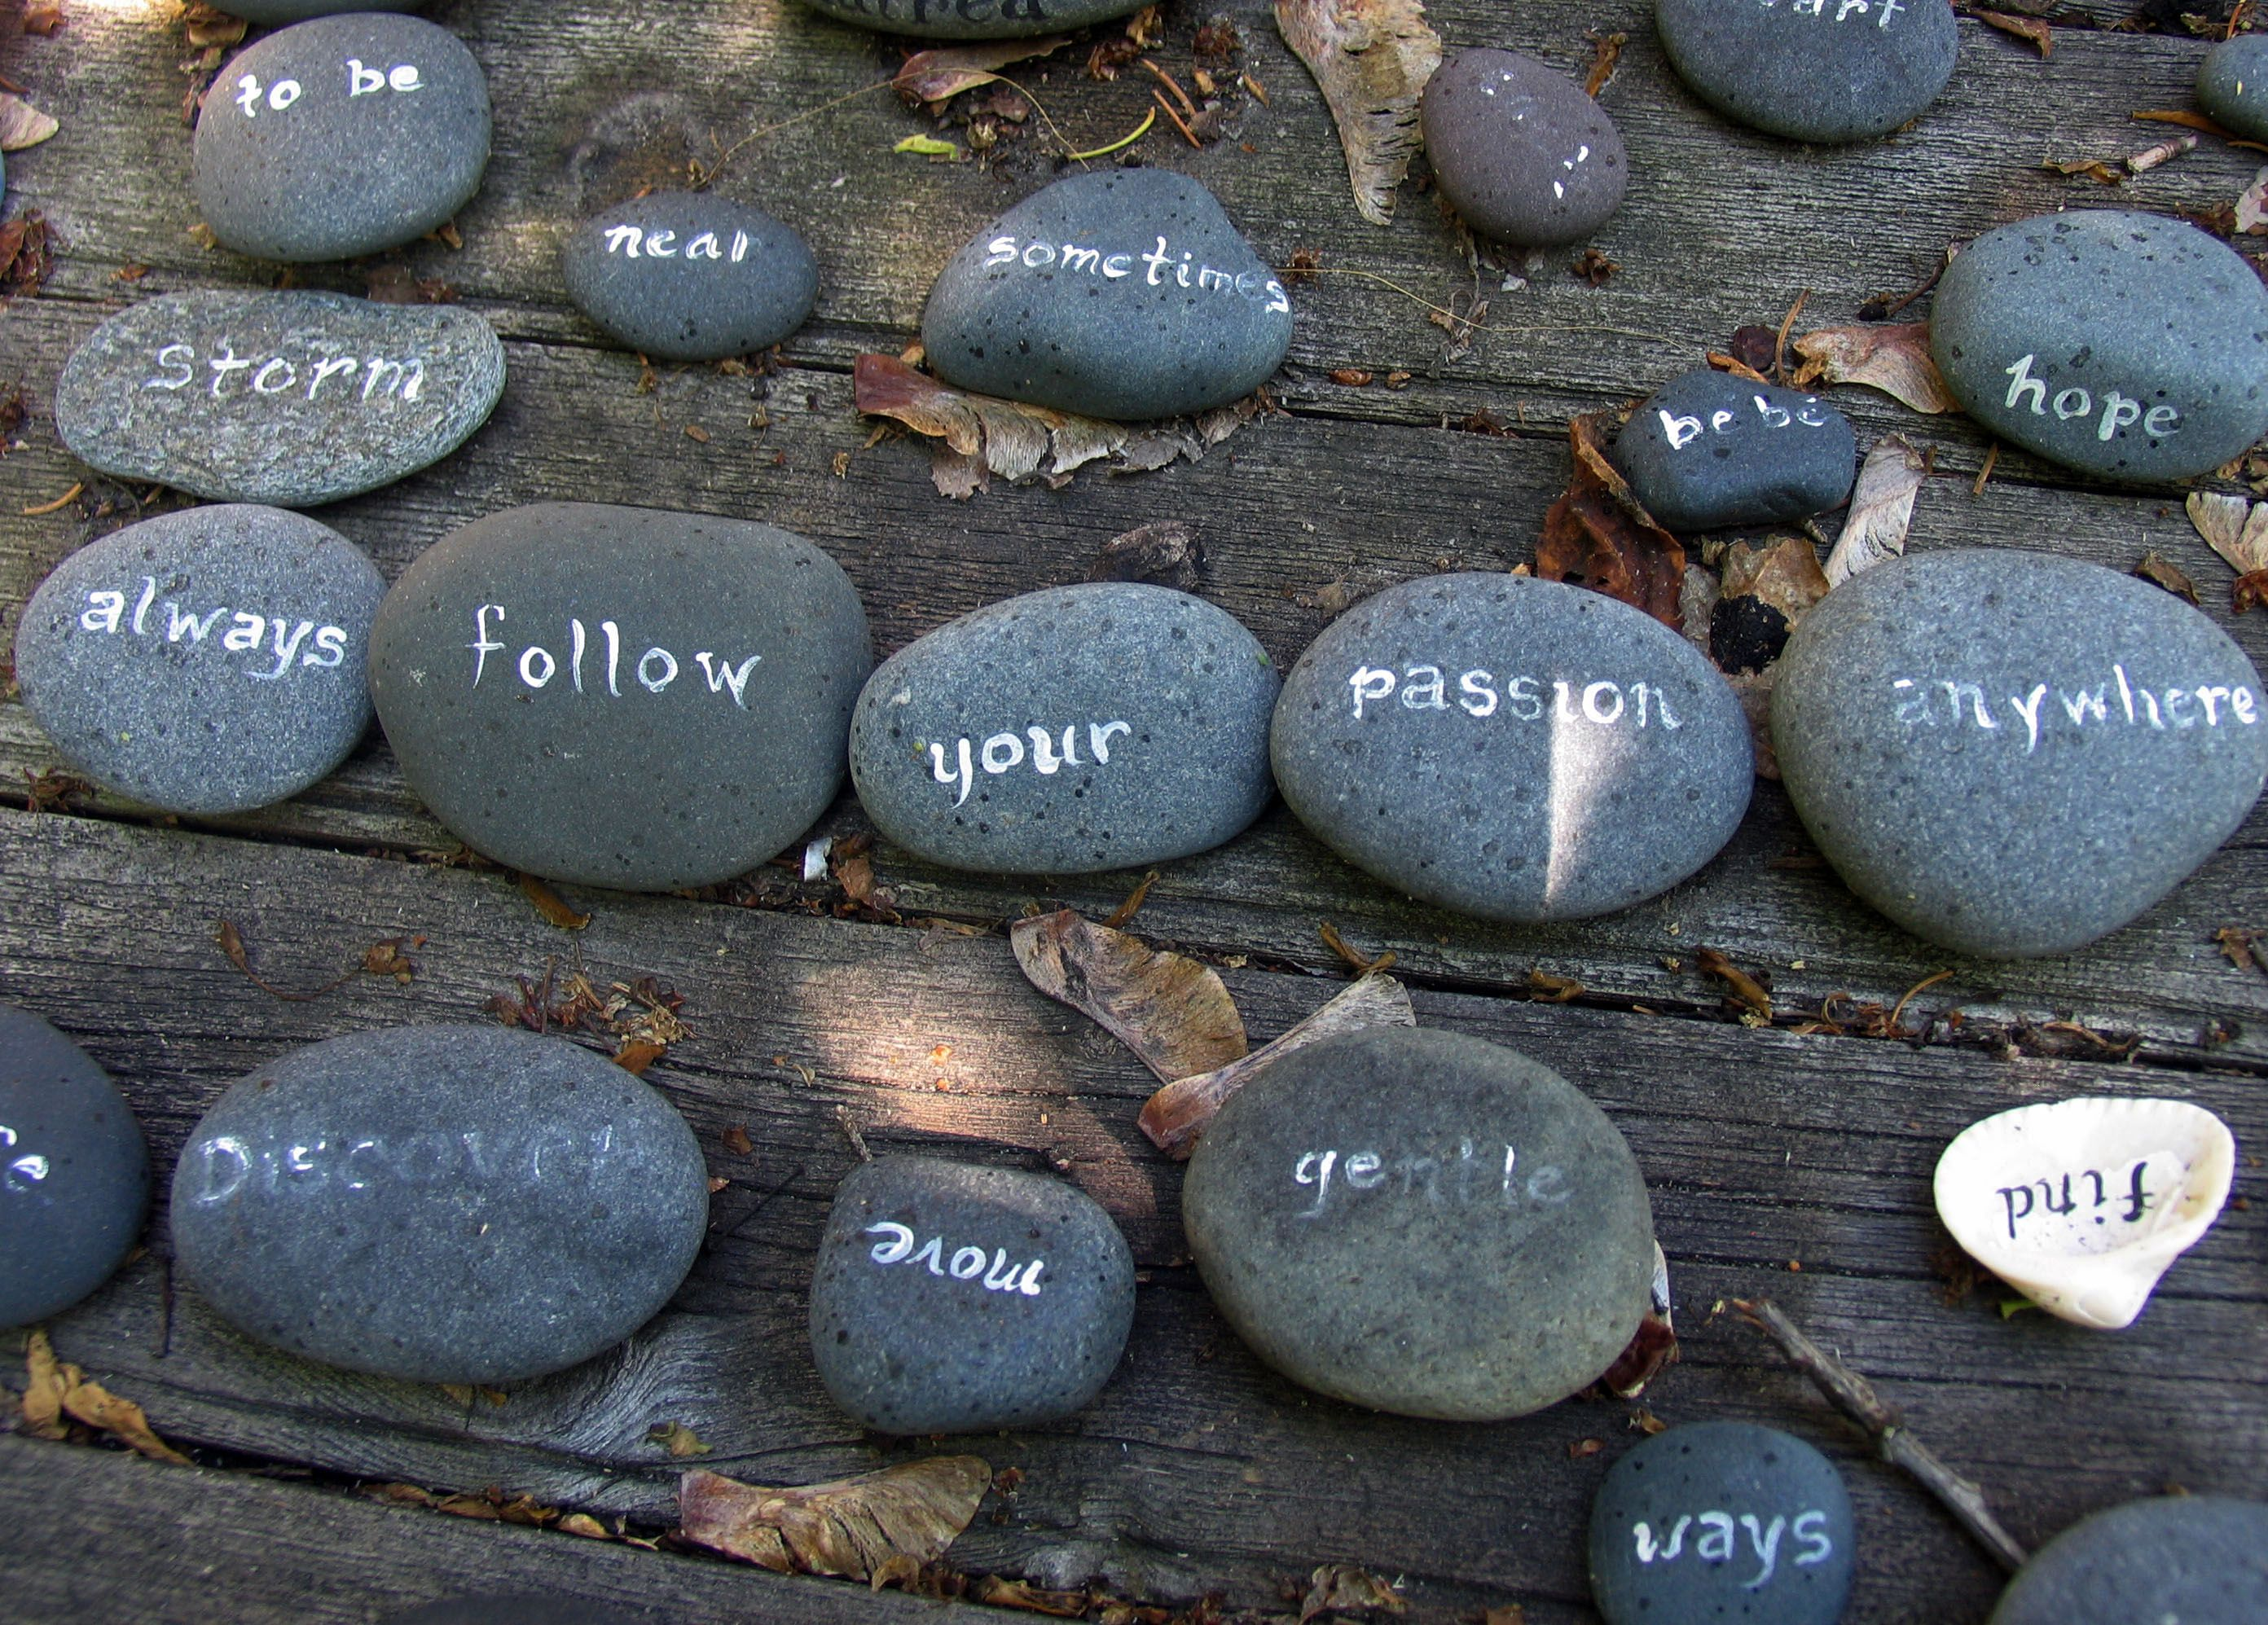 always-follow-your-passion-rocks-up_2501.jpg (2784×1995)